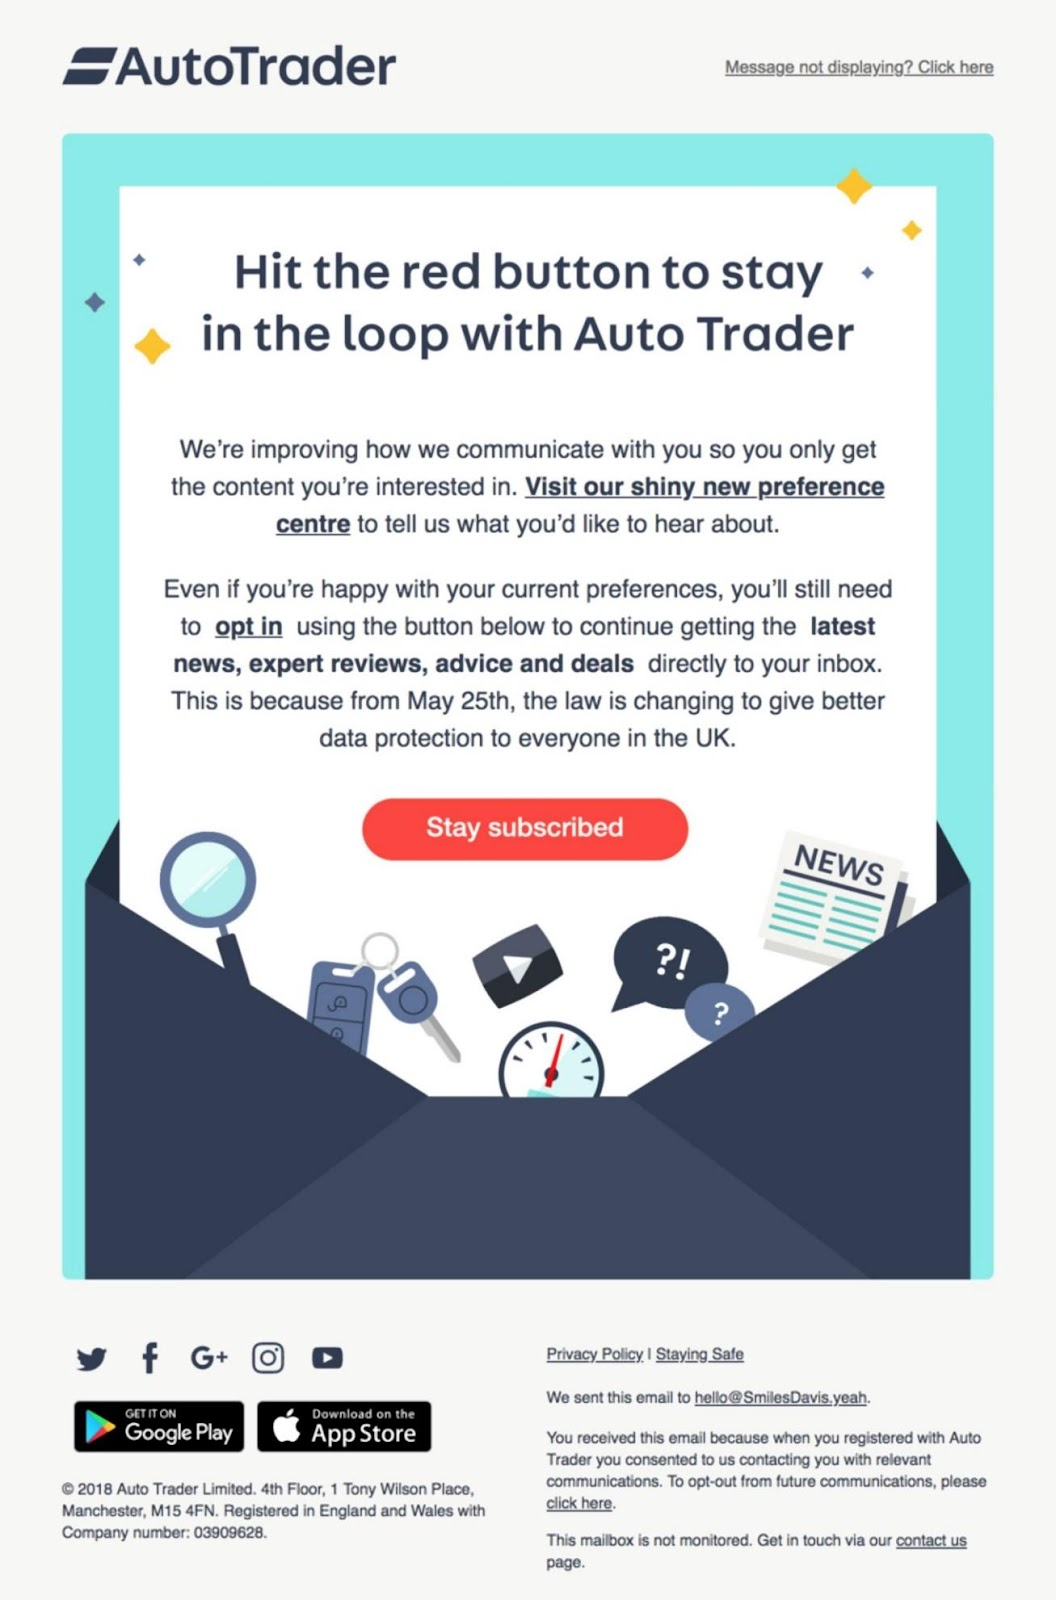 AutoTrader email example asking users if they would like to unsubscribe